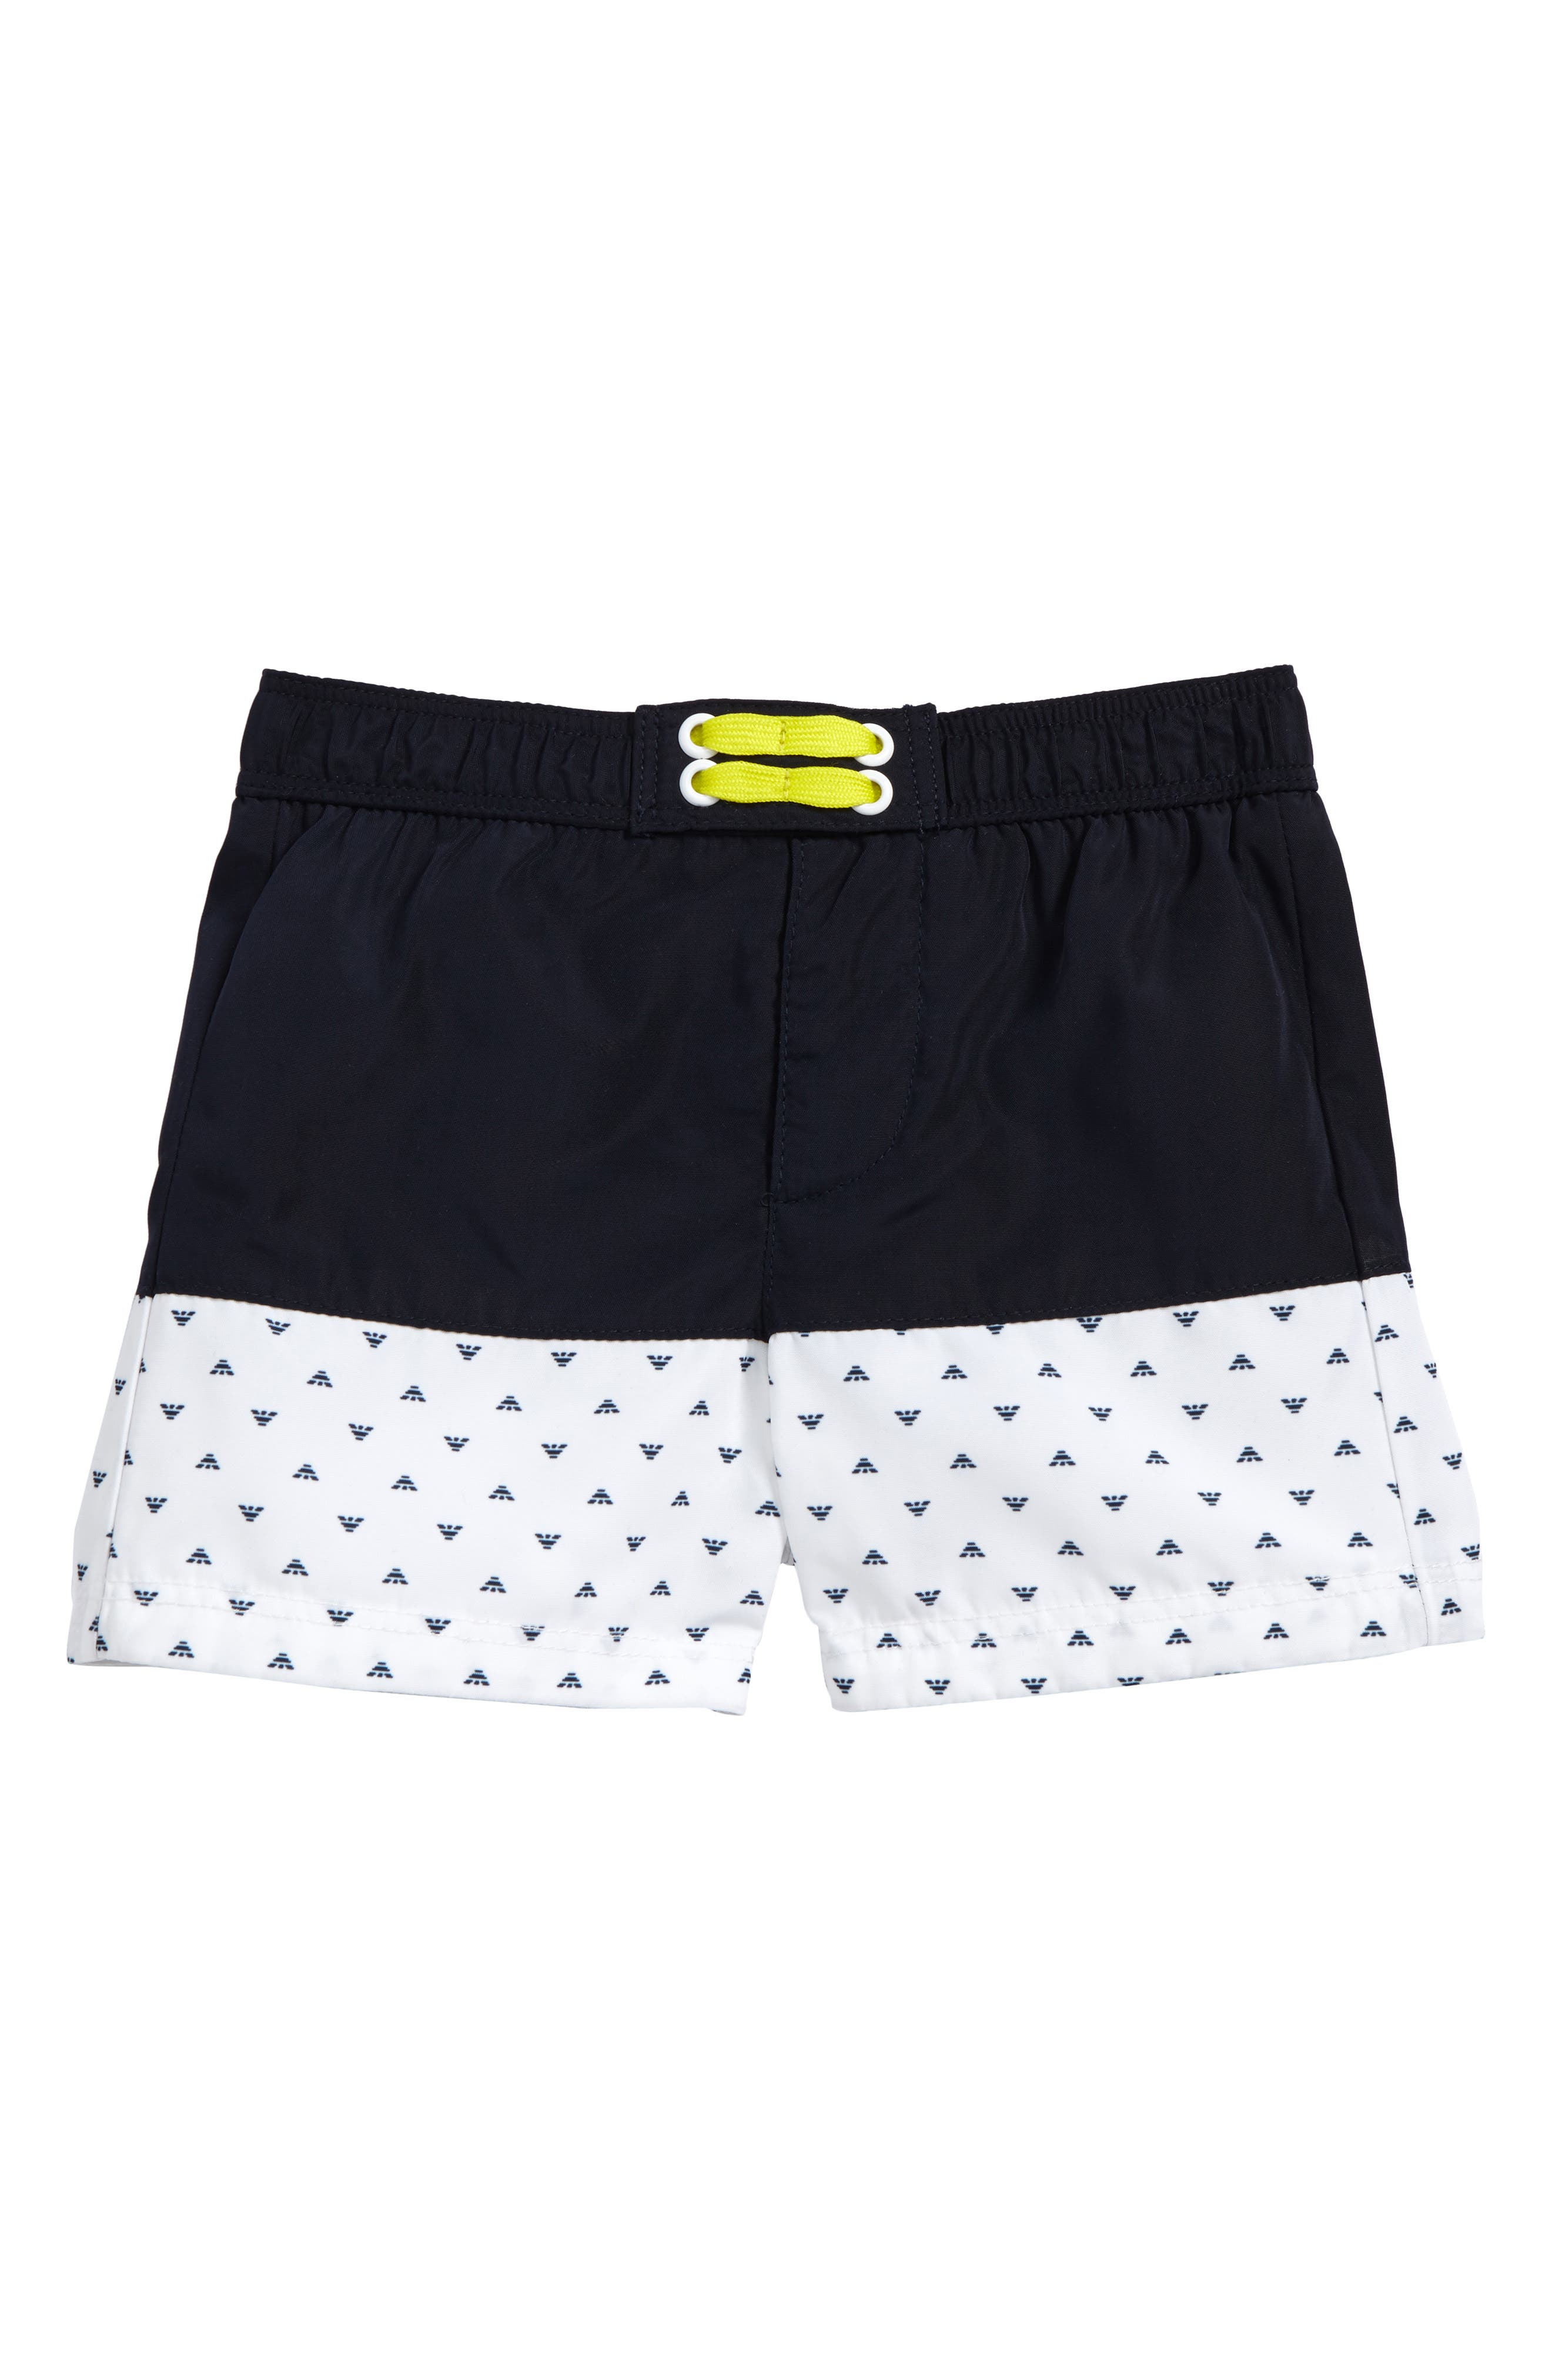 Logo Swim Trunks,                             Main thumbnail 1, color,                             Navy